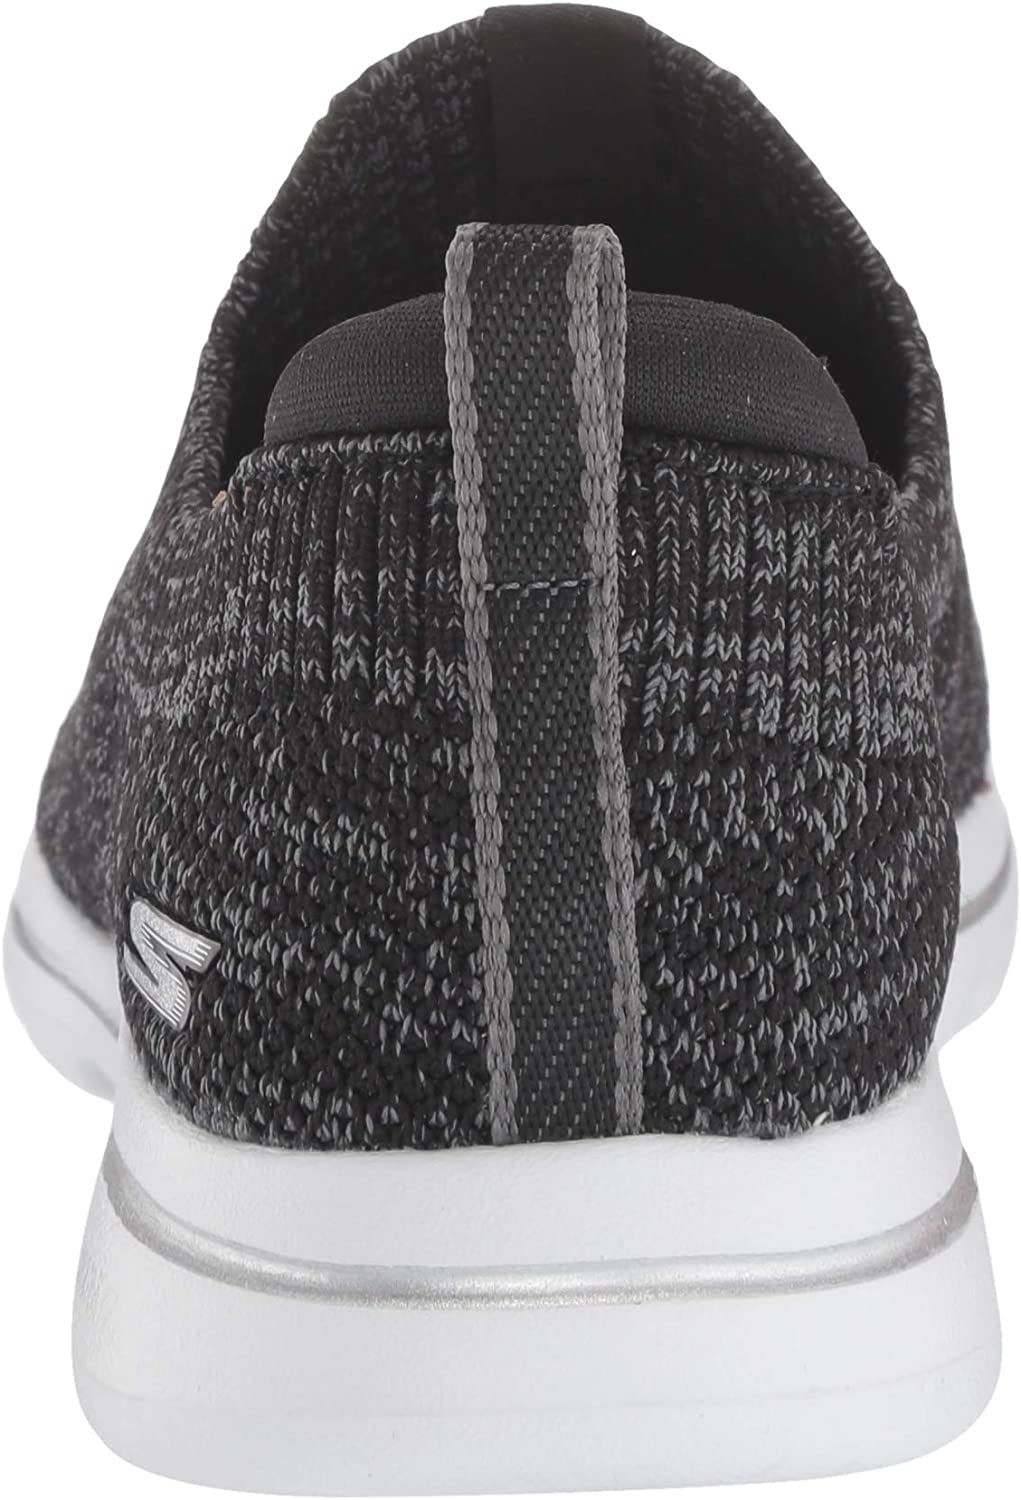 Skechers Go Walk 5 Trendy Sneakers voor dames Black Black Textile Gray Trim Bkgy